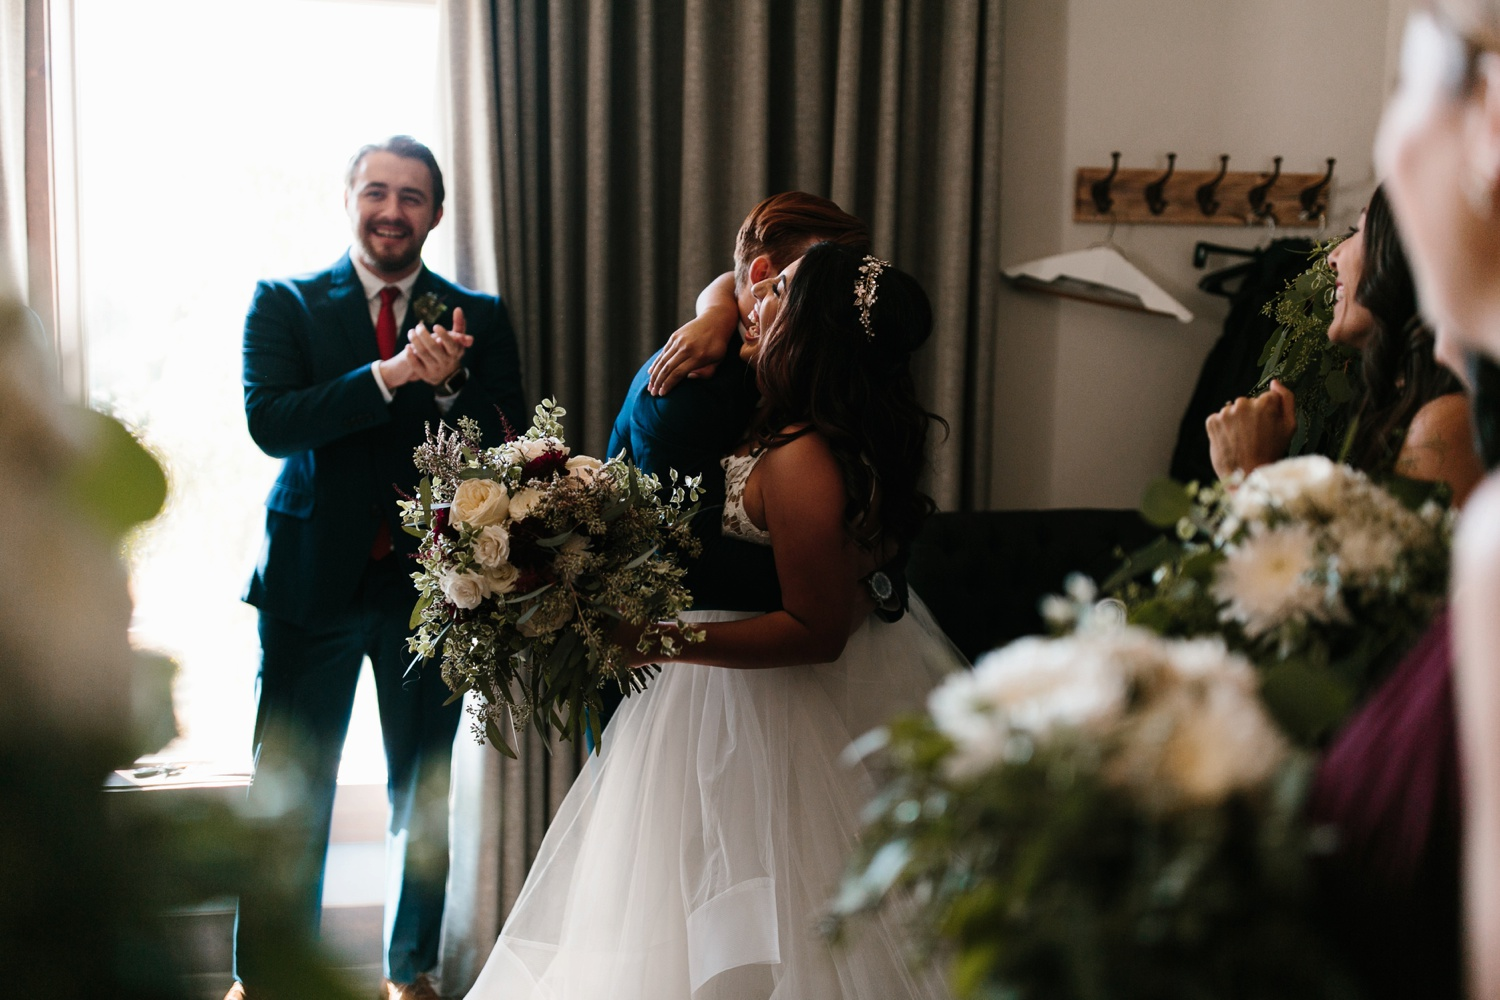 Grant + Lysette | a vibrant, deep burgundy and navy, and mixed metals wedding at Hidden Pines Chapel by North Texas Wedding Photographer Rachel Meagan Photography 115